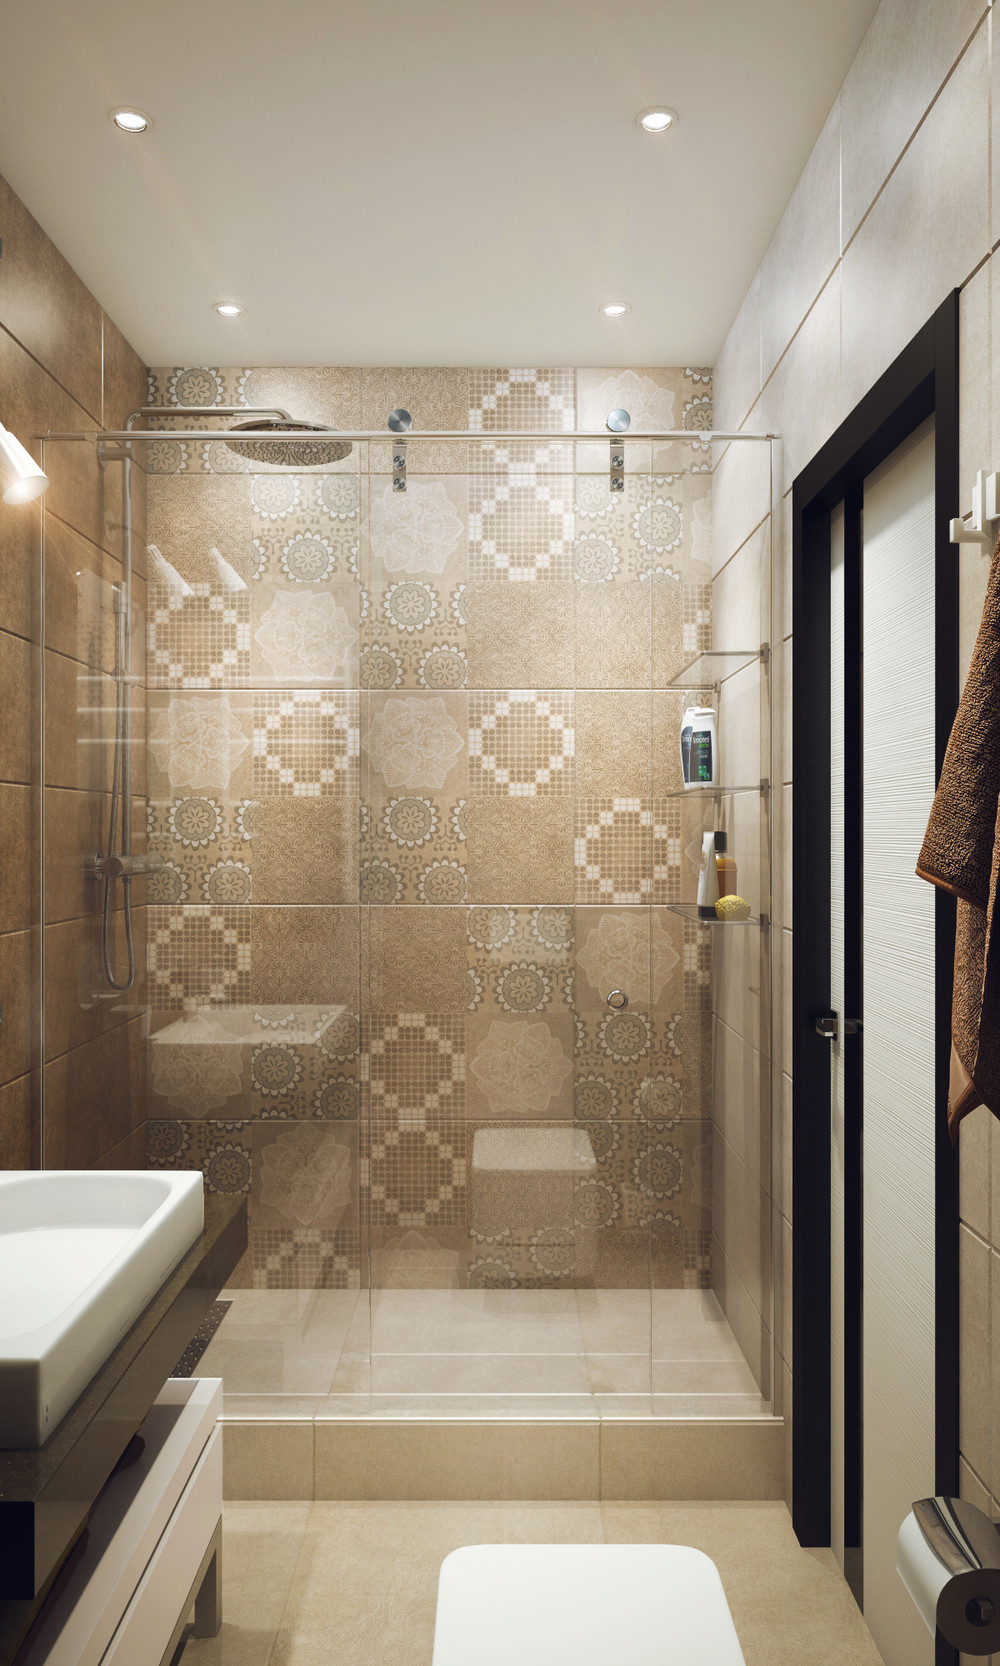 Cool Tiled Shower - Minimalist 1 bedroom apartment designed for a young man